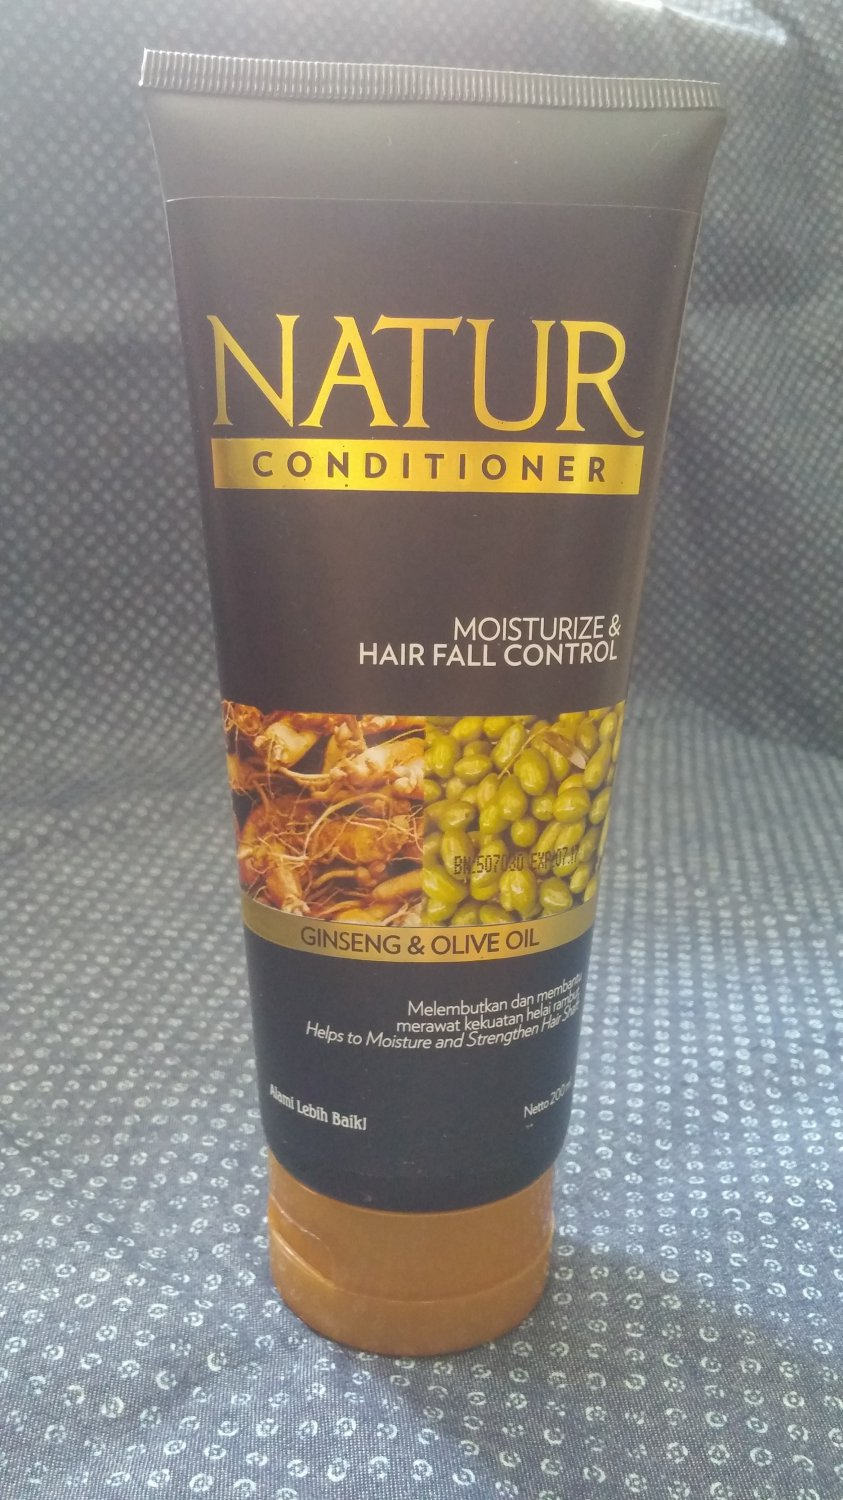 Natur Hair Conditioner With Olive Oil & Ginseng Extract